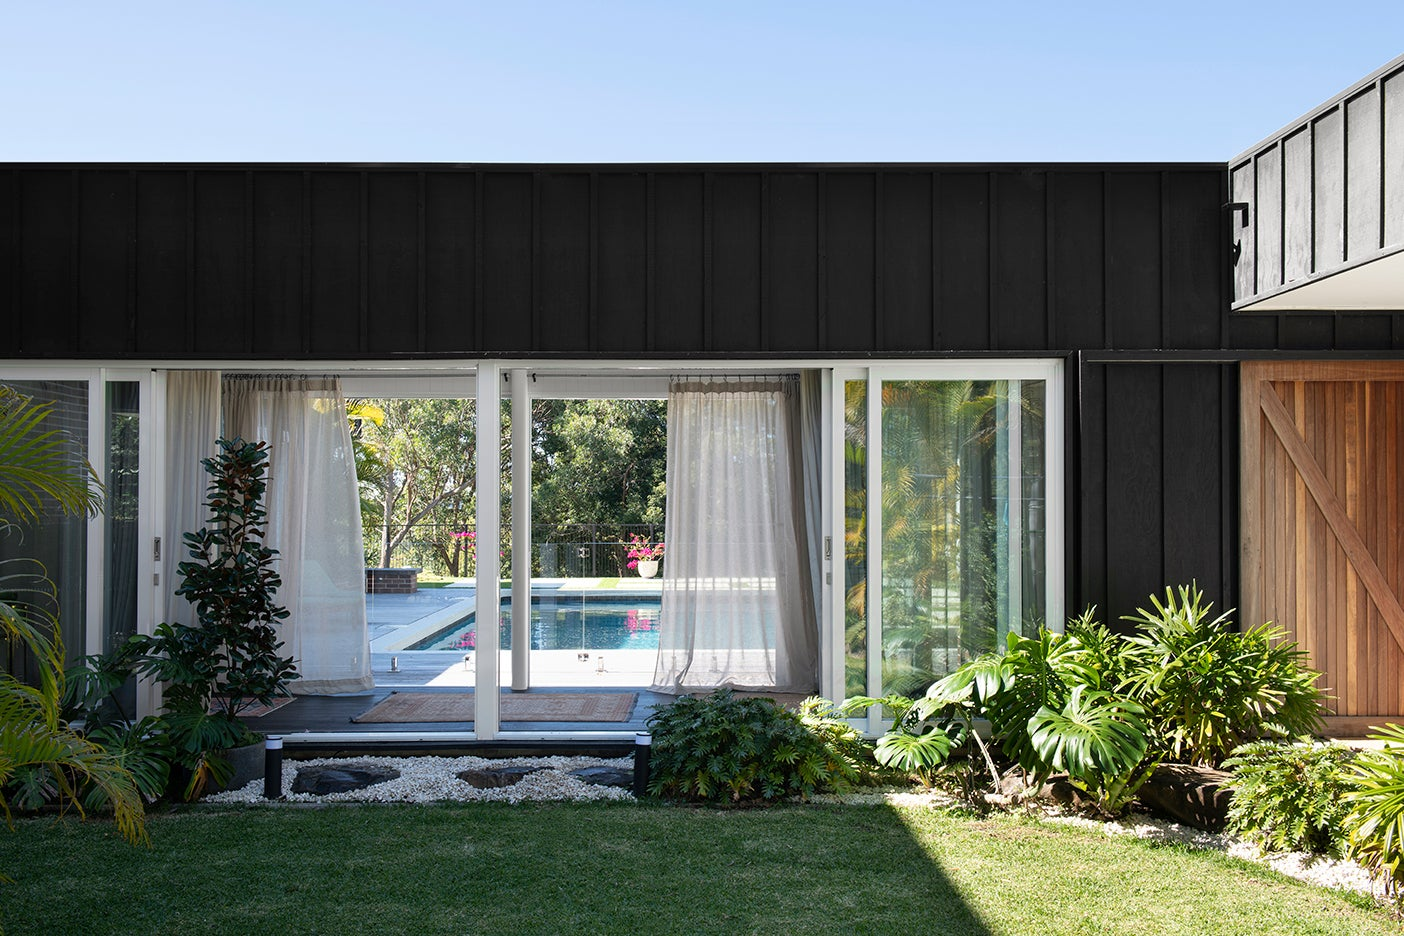 black house with grassy yard